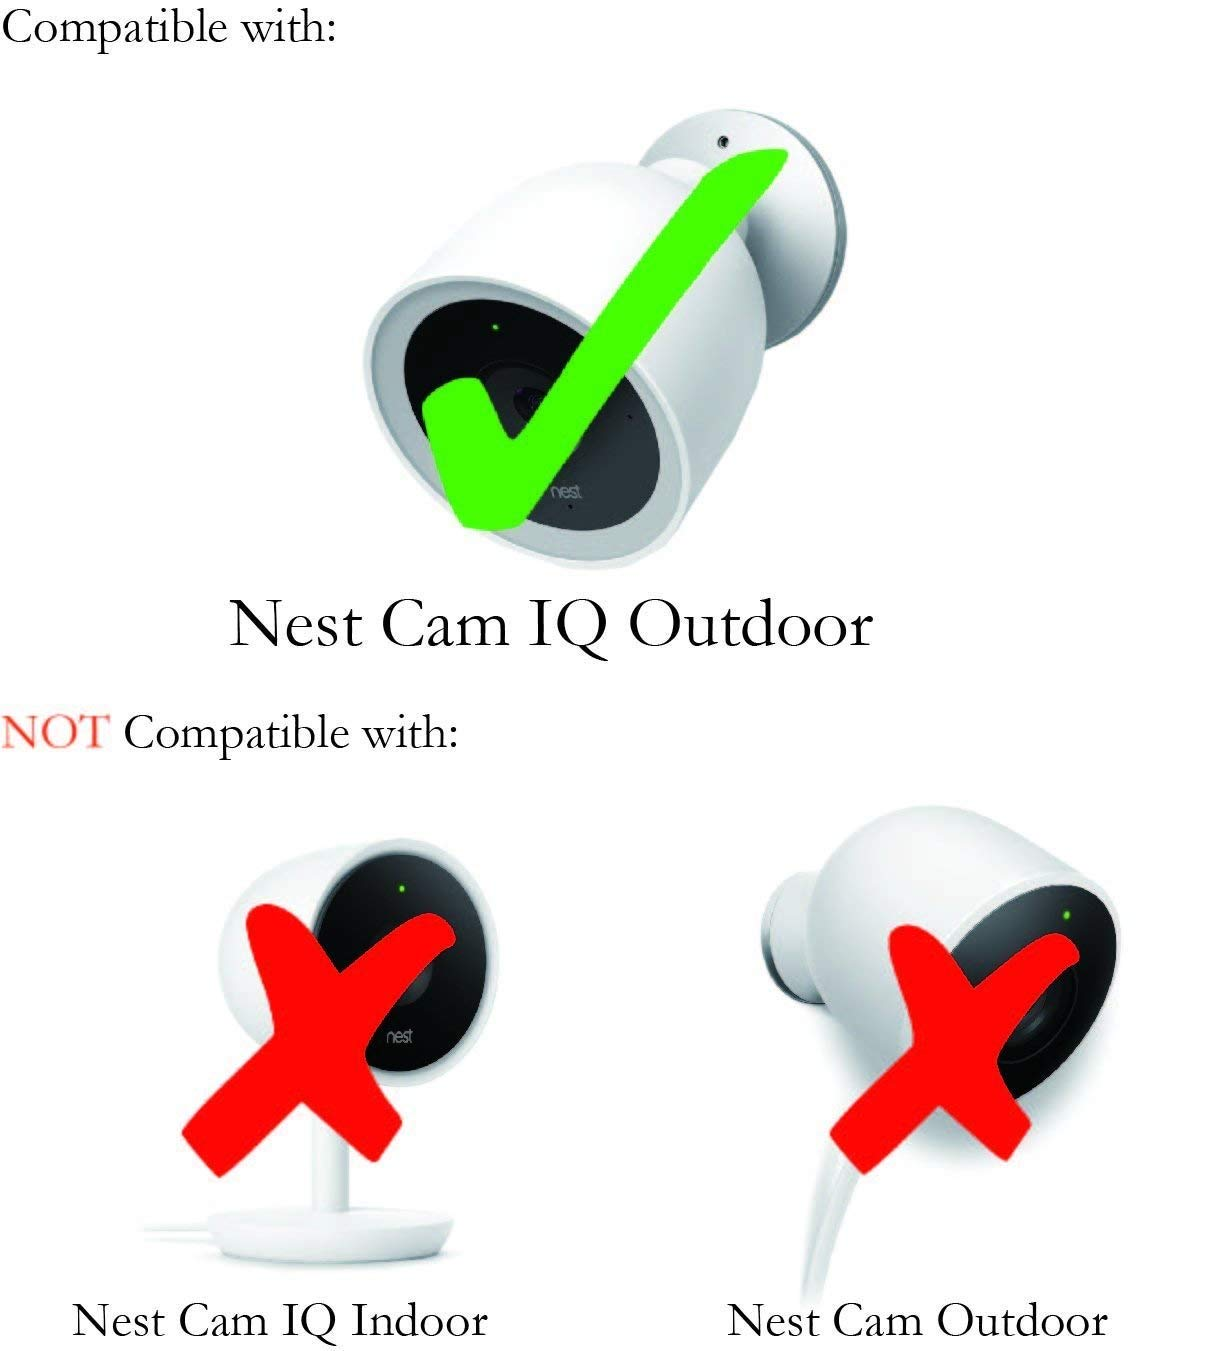 1 Pack, Grey Nest Cam IQ Outdoor Skin by Wasserstein Colorful Silicone Skins Compatible with Nest Cam IQ Outdoor Security Camera; Camouflage and Accessorize Your Camera